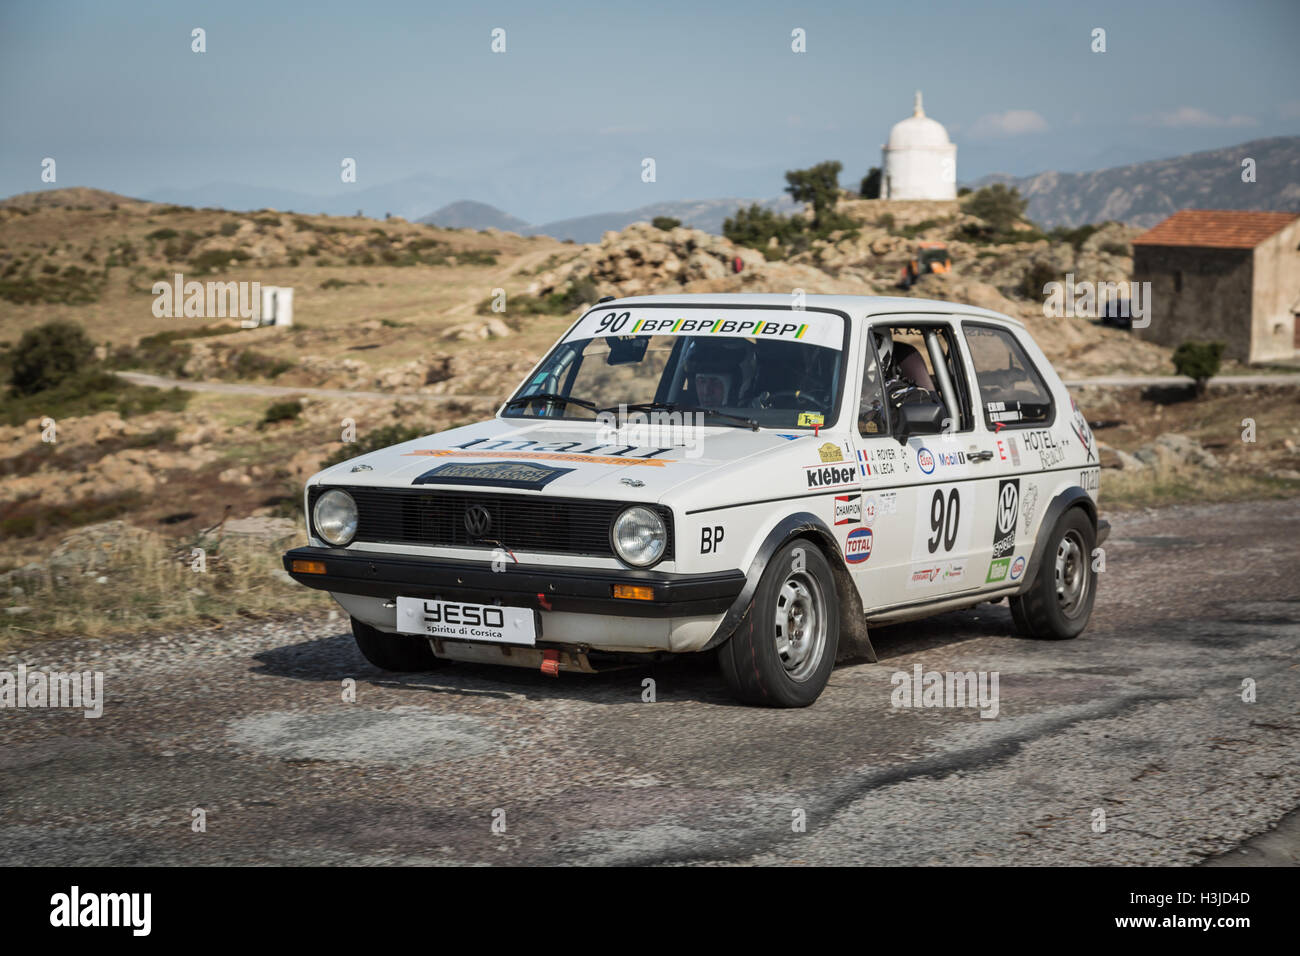 PALASCA, CORSICA - 7th OCTOBER 2016. R Royer & J P Giovannangeli in their Volkswagen Golf in the 2016 Tour de - Stock Image